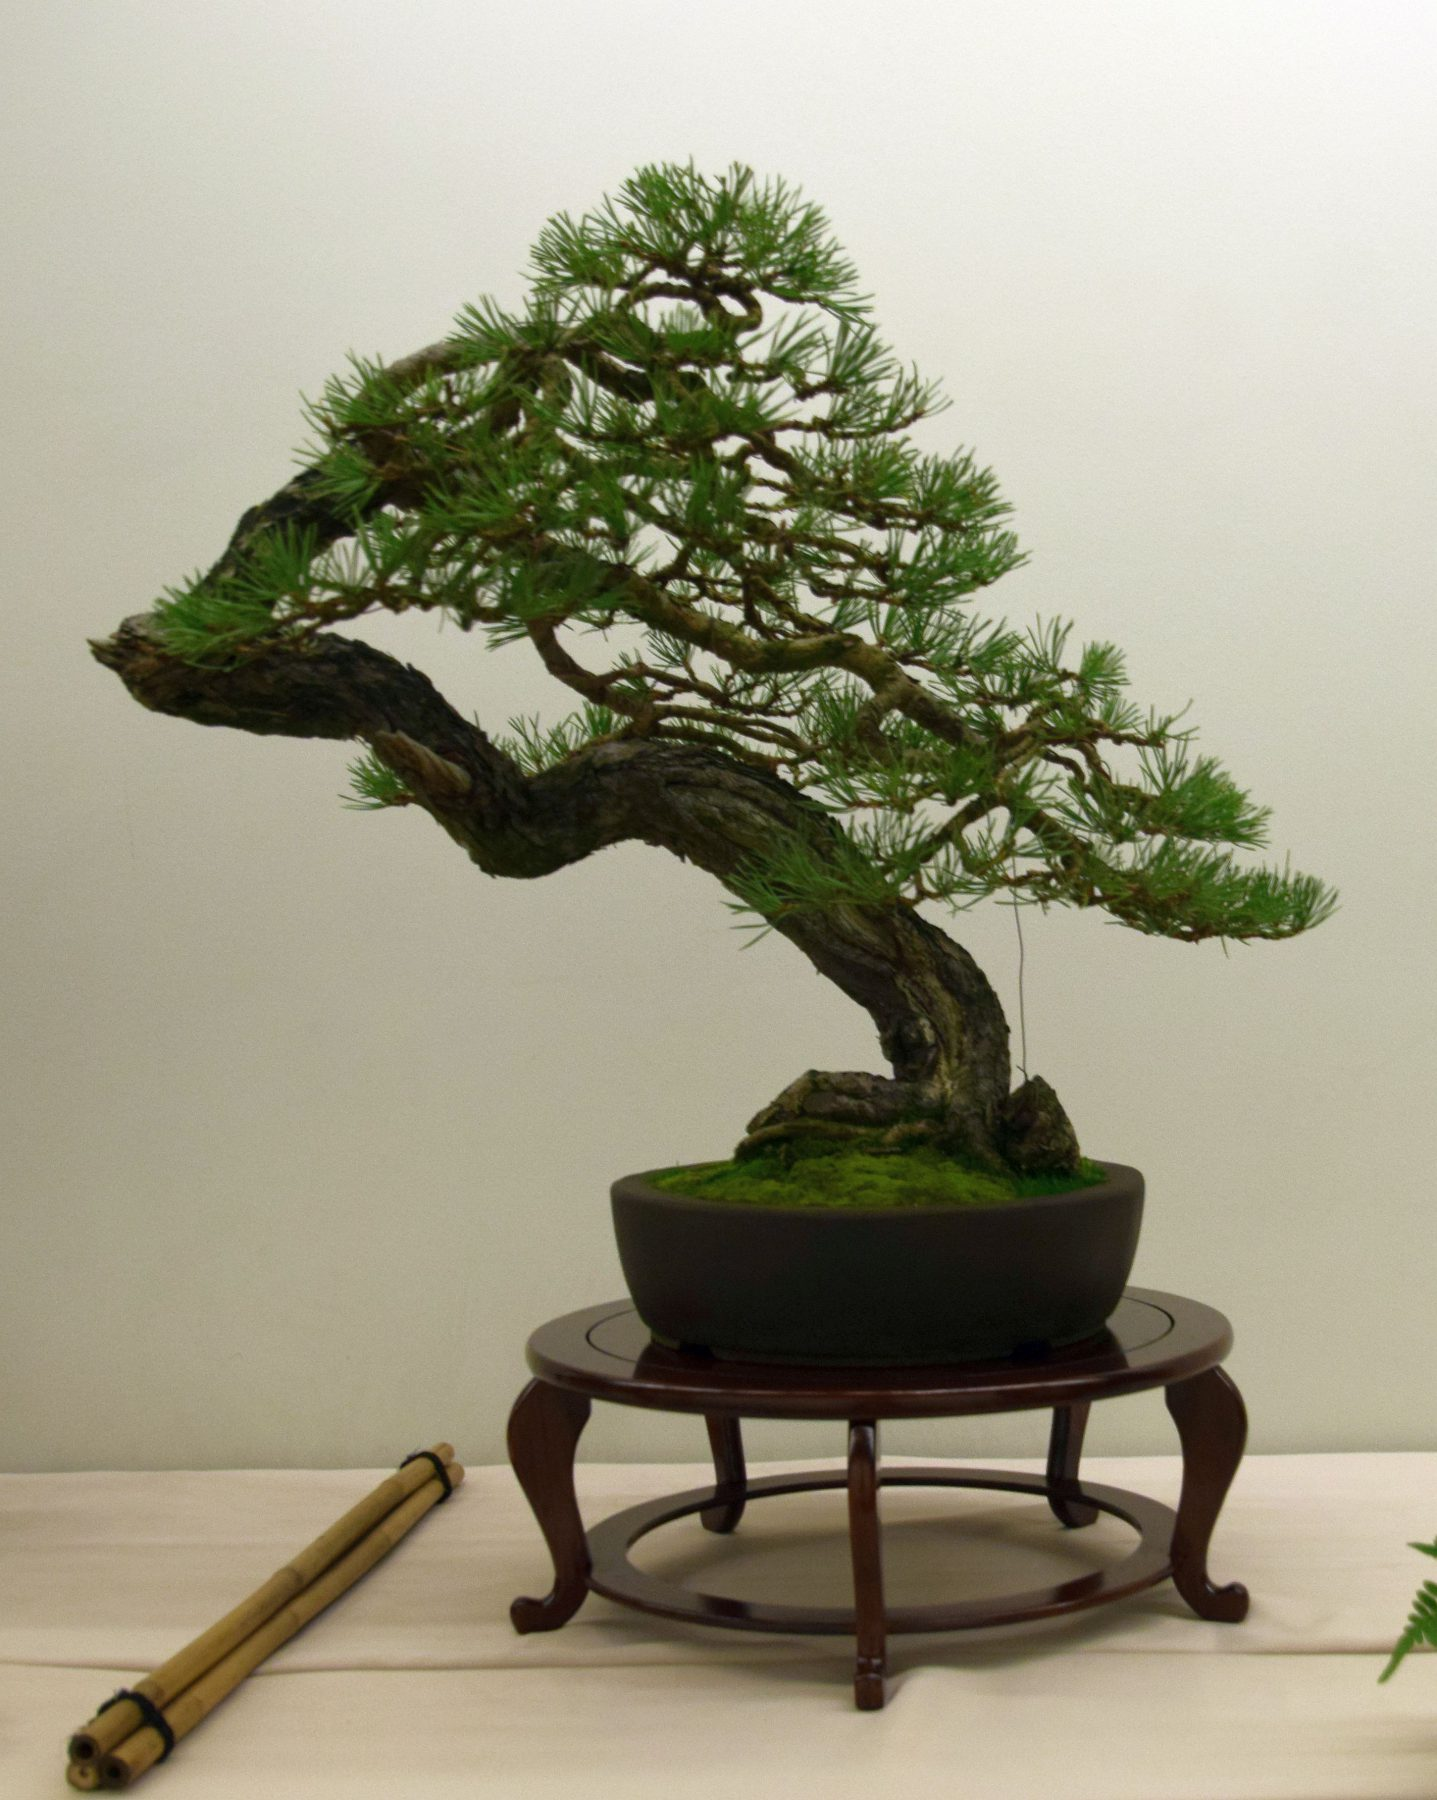 euk-bonsai-ten-2016-club-bonsai-003